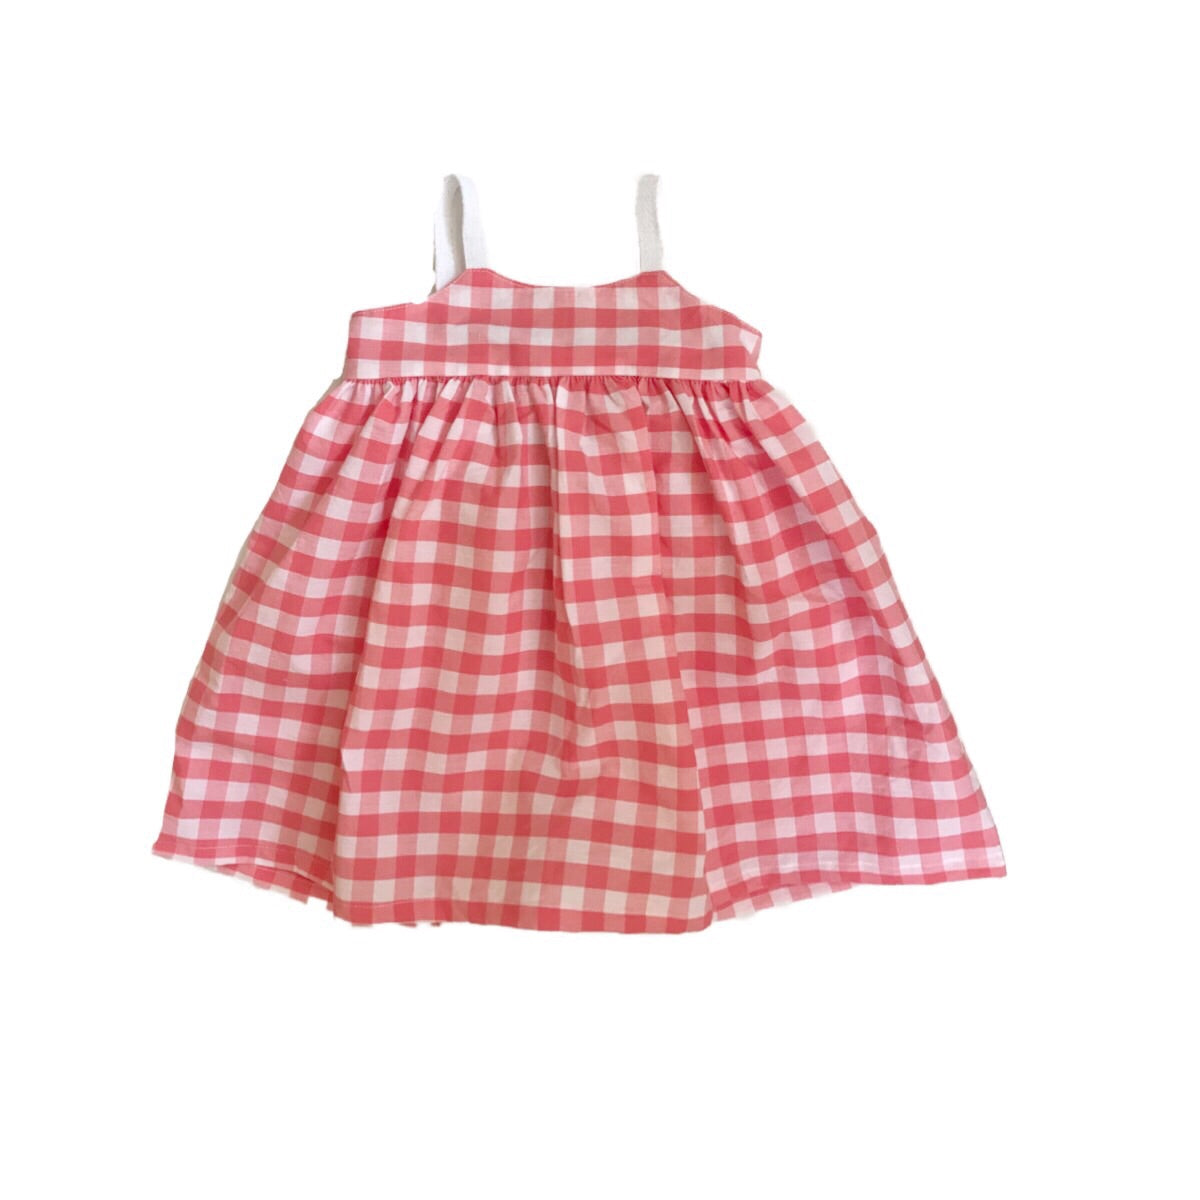 Elle Dress - Peach Gingham